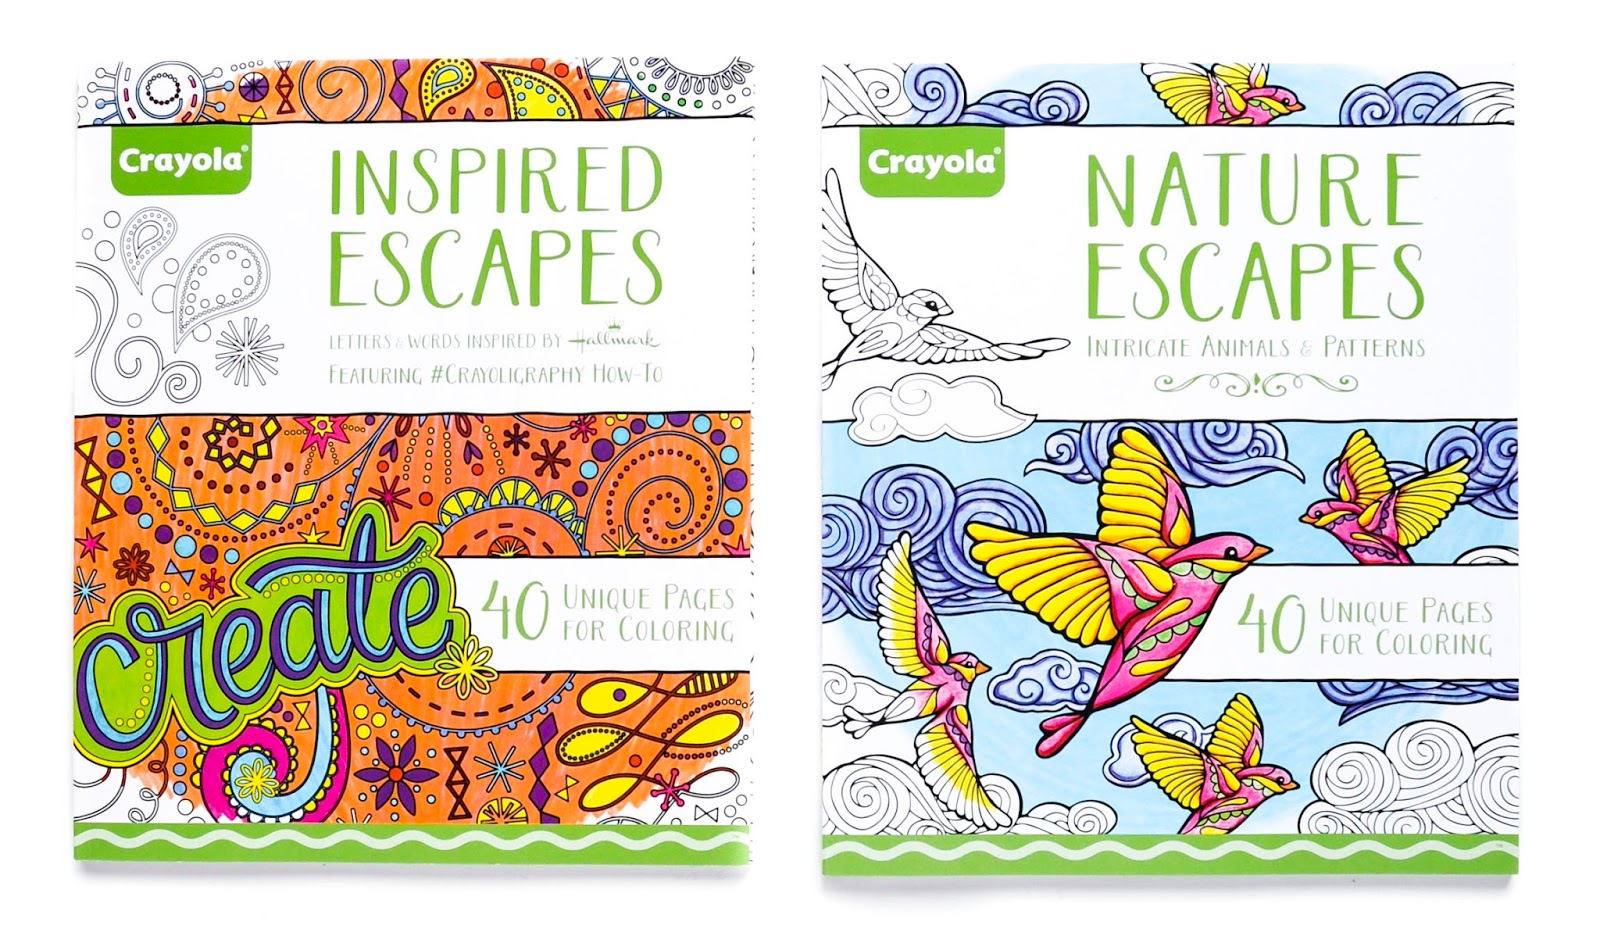 Click Here To Search For Crayola Escapes On Amazon